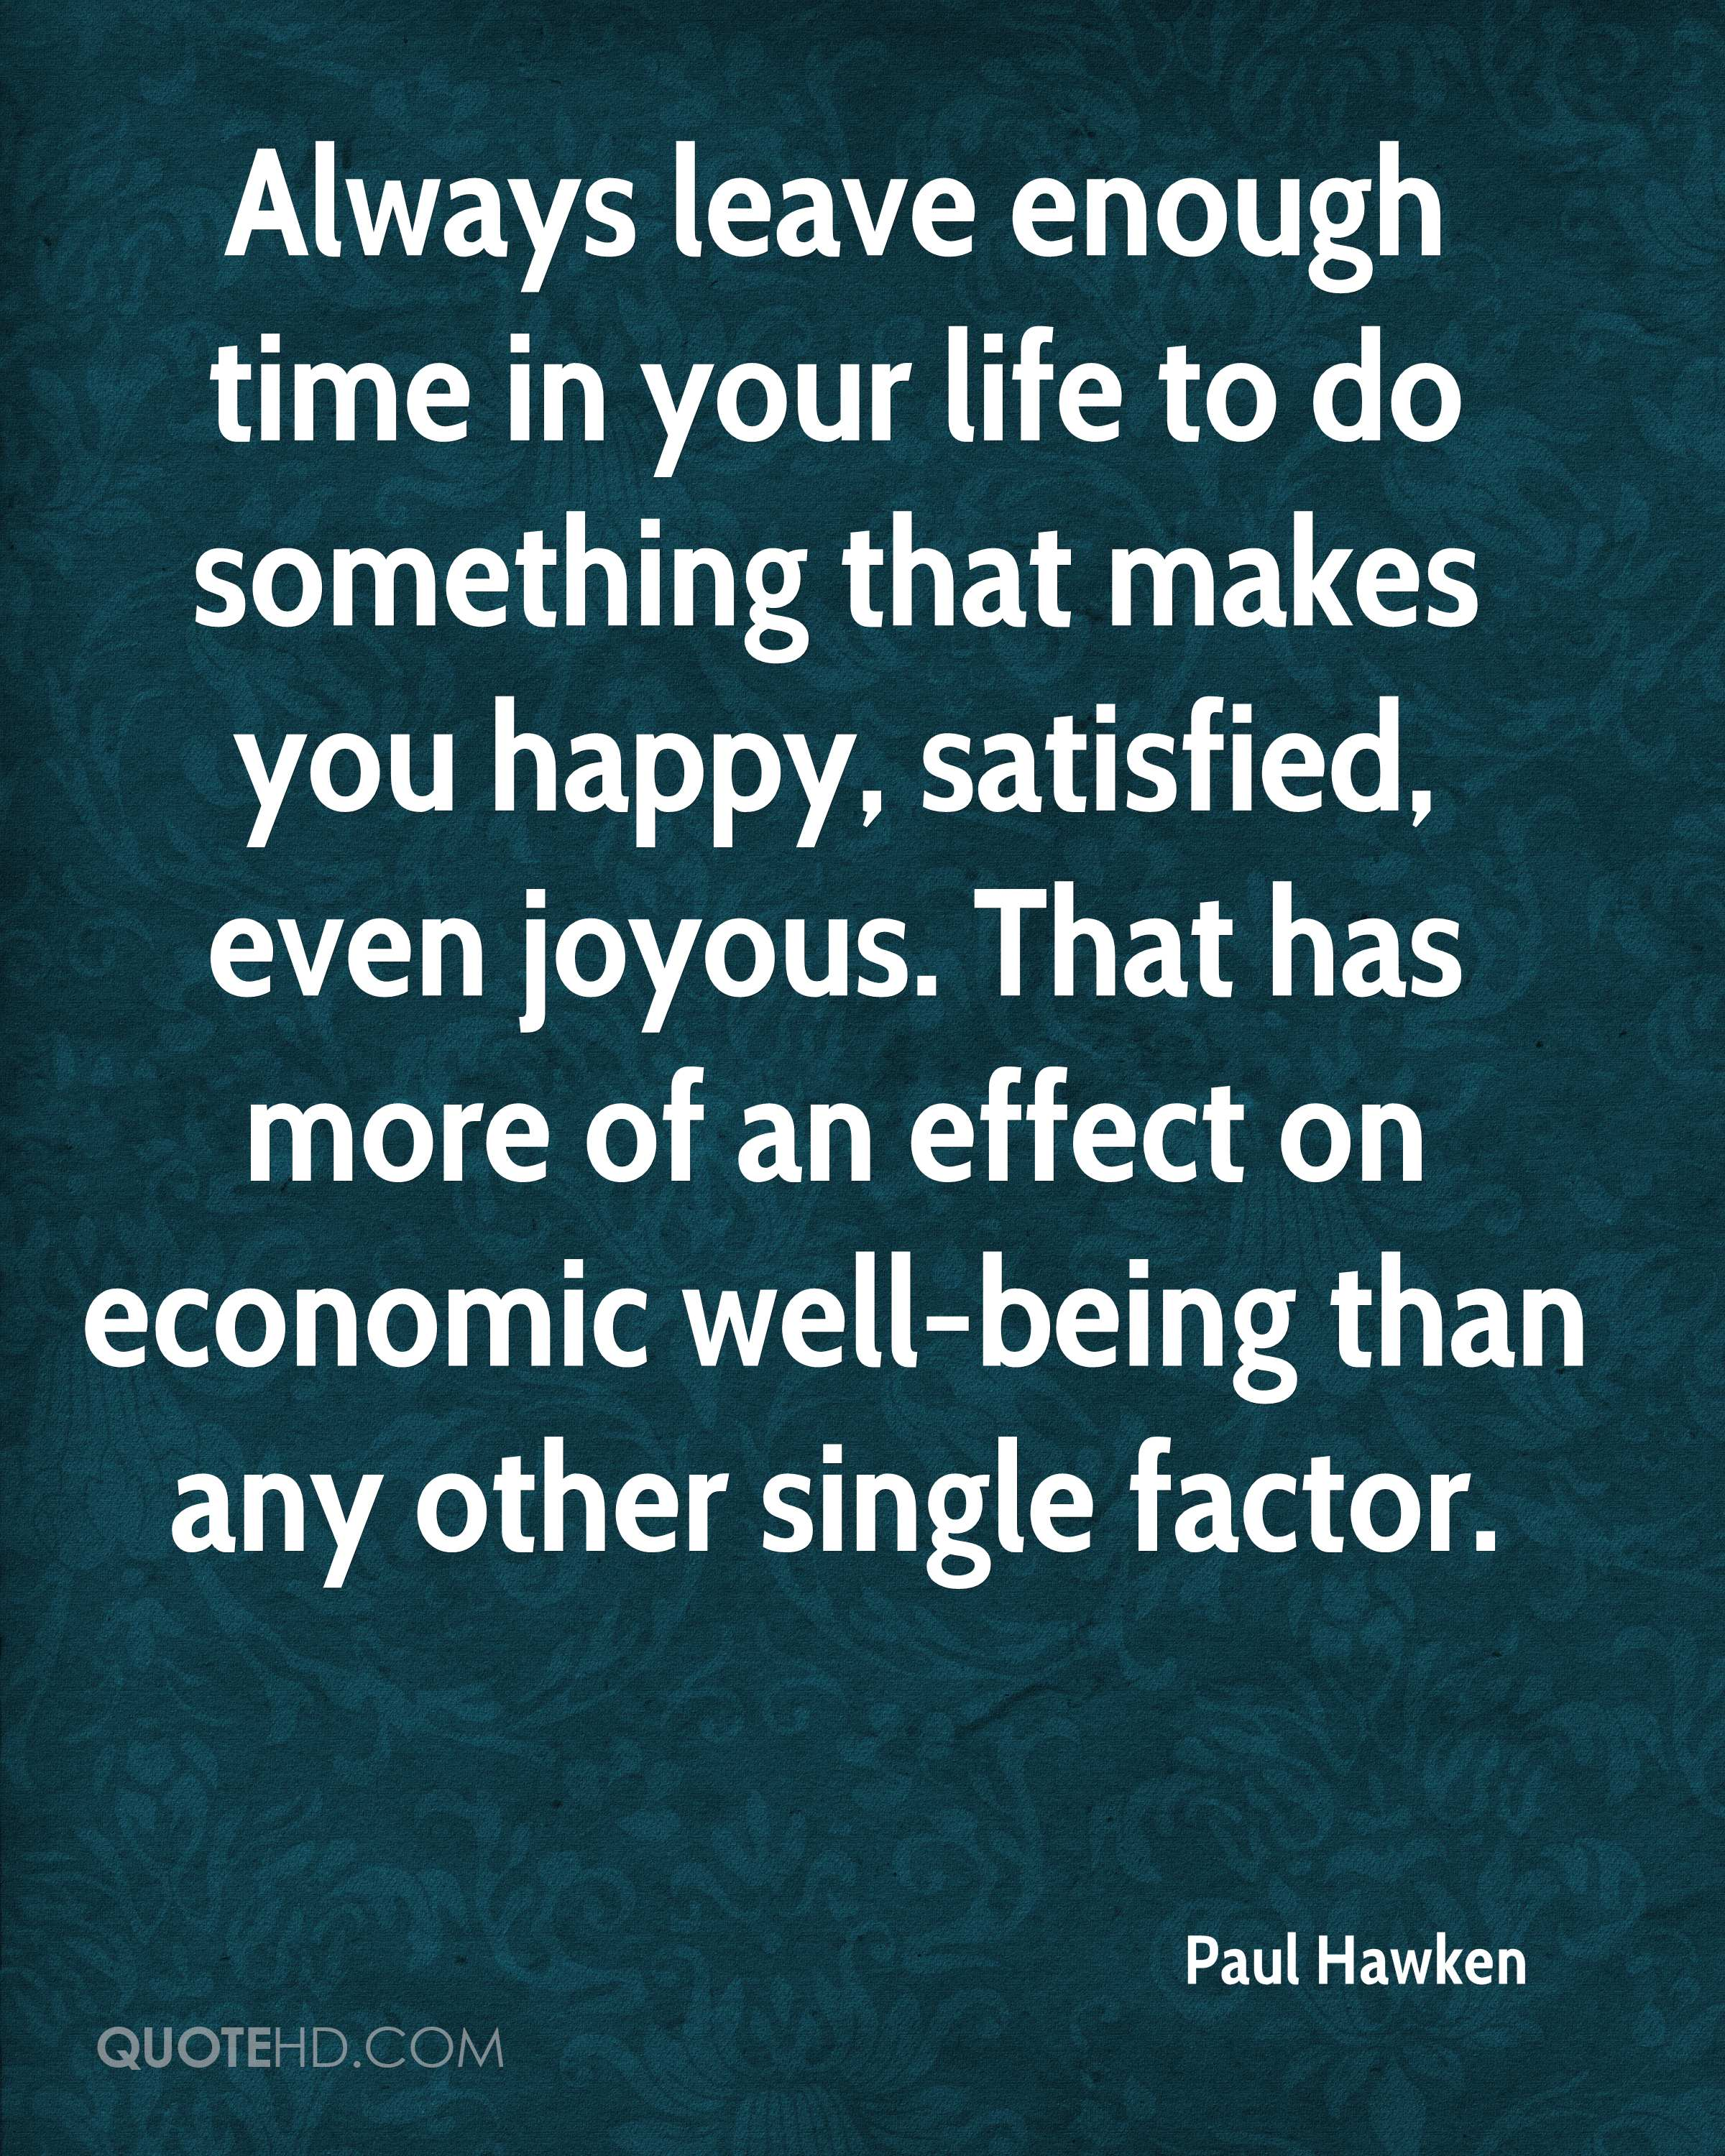 Always leave enough time in your life to do something that makes you happy, satisfied, even joyous. That has more of an effect on economic well-being than any other single factor.